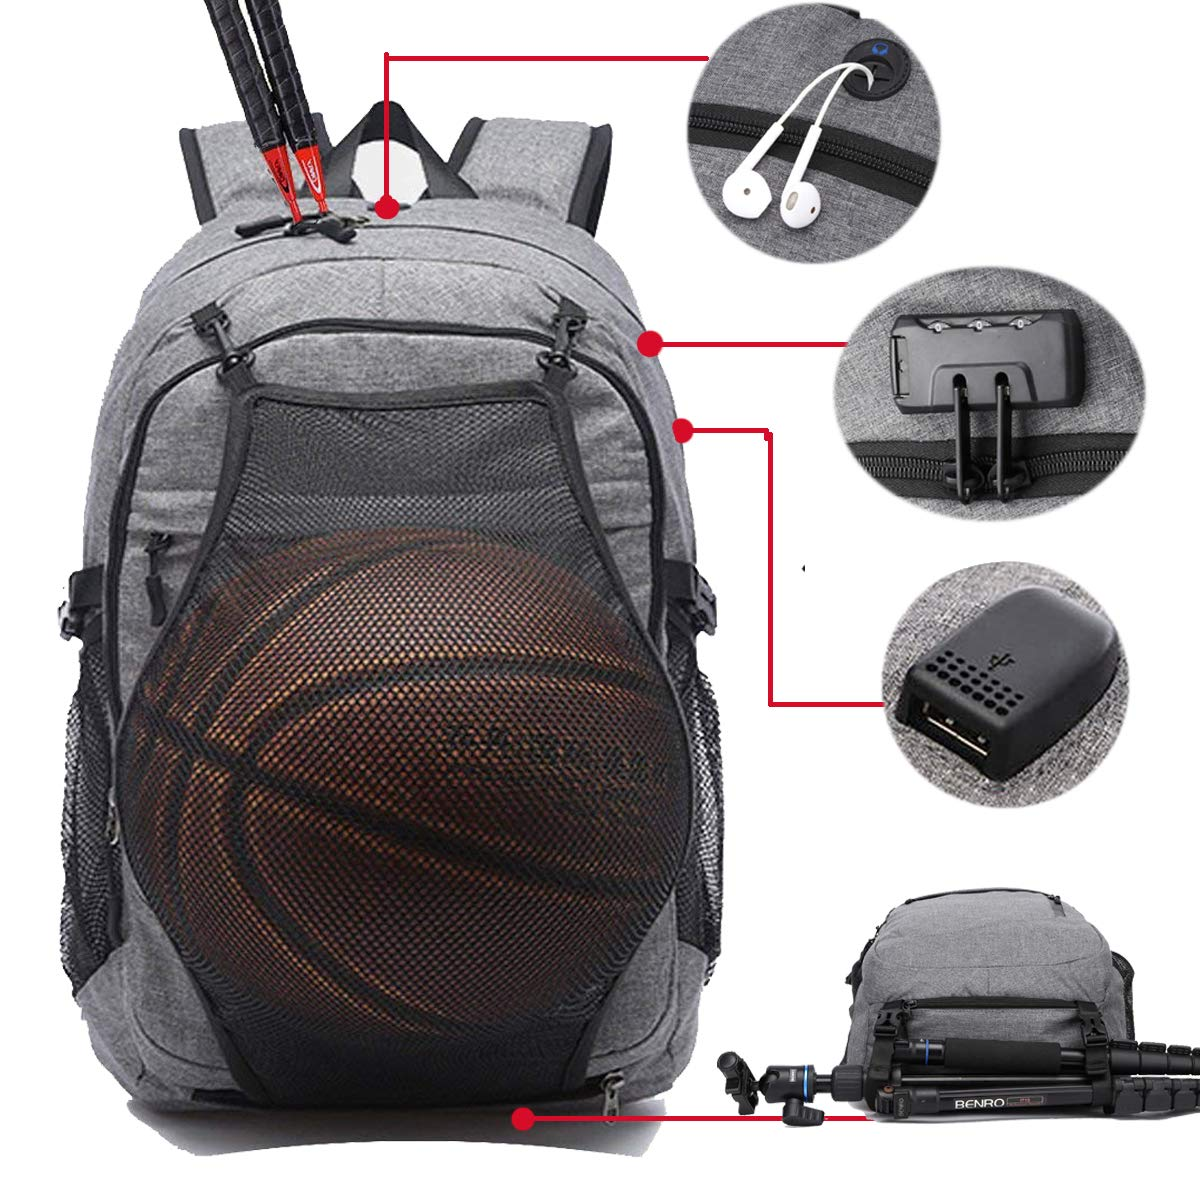 7c00d45c019 Laptop Sports Backpack, Durable Outdoor Travel Bag Basketball Backpack -  Soccer Backpack with USB Charging Port, Water Resistant College School  Backpack for ...